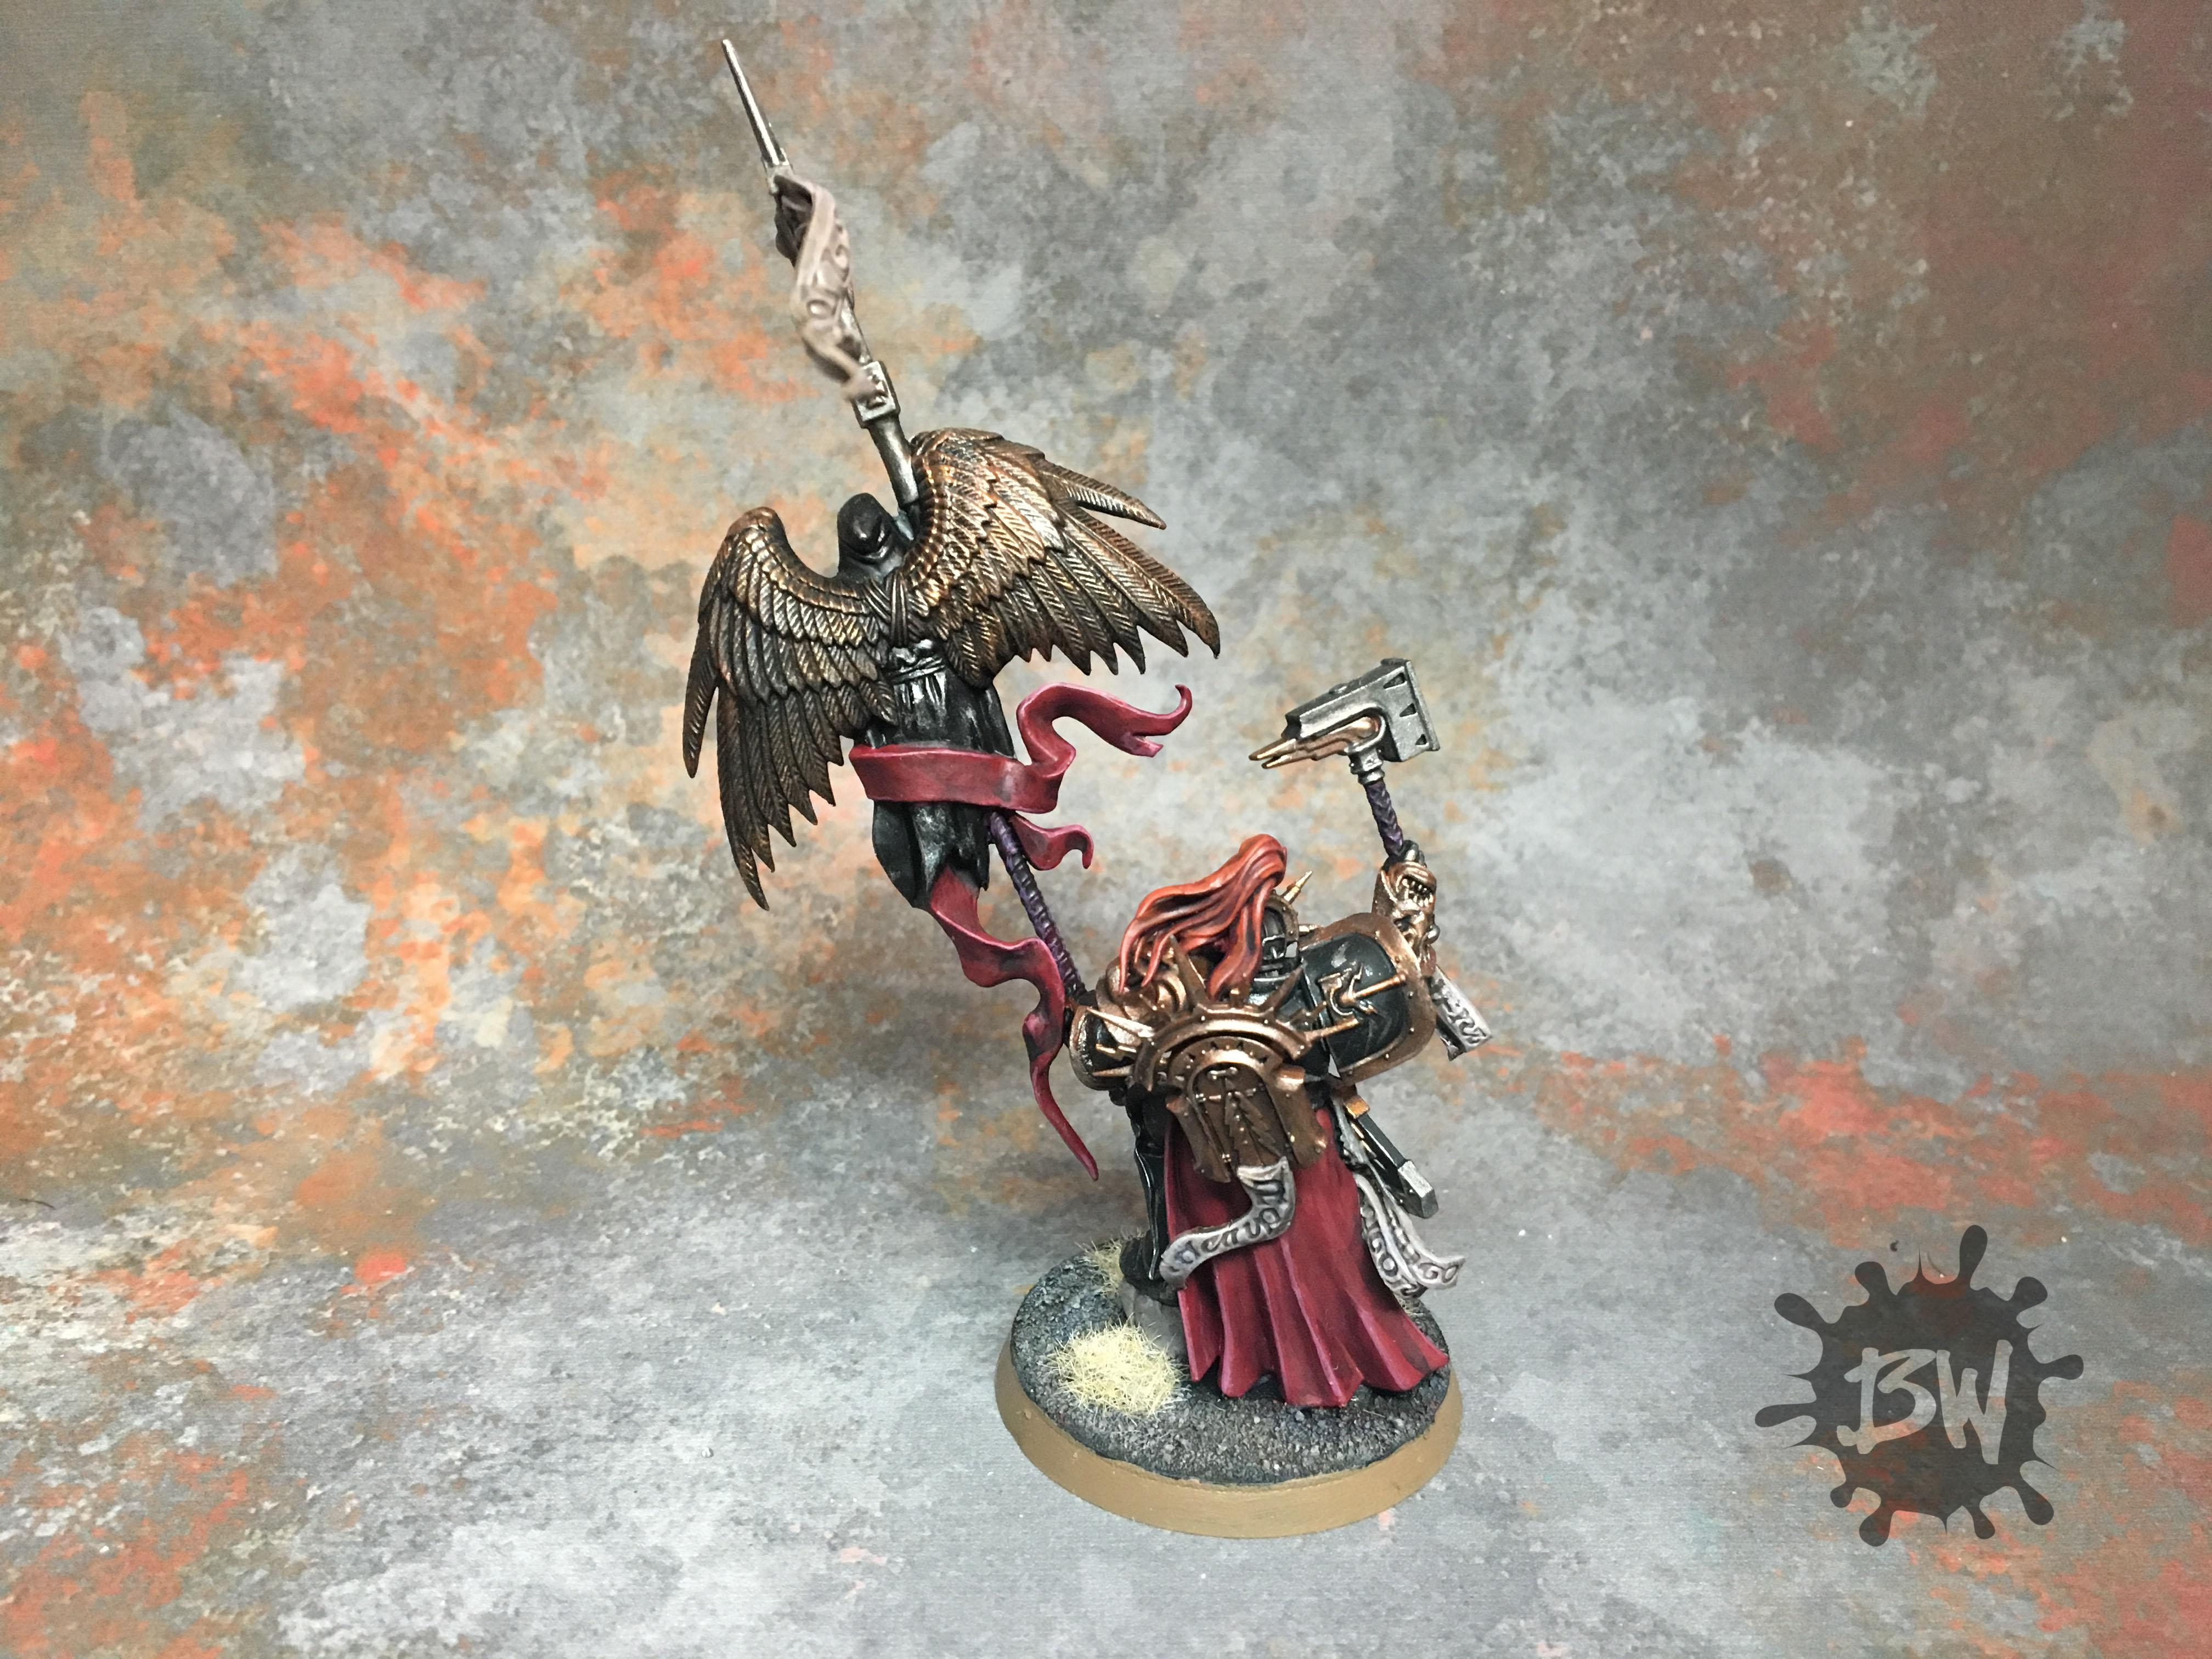 Age Of Sigmar, Bw, Commission, Knight-vexillor, Order, Painting, Stormcast, Warhammer Fantasy